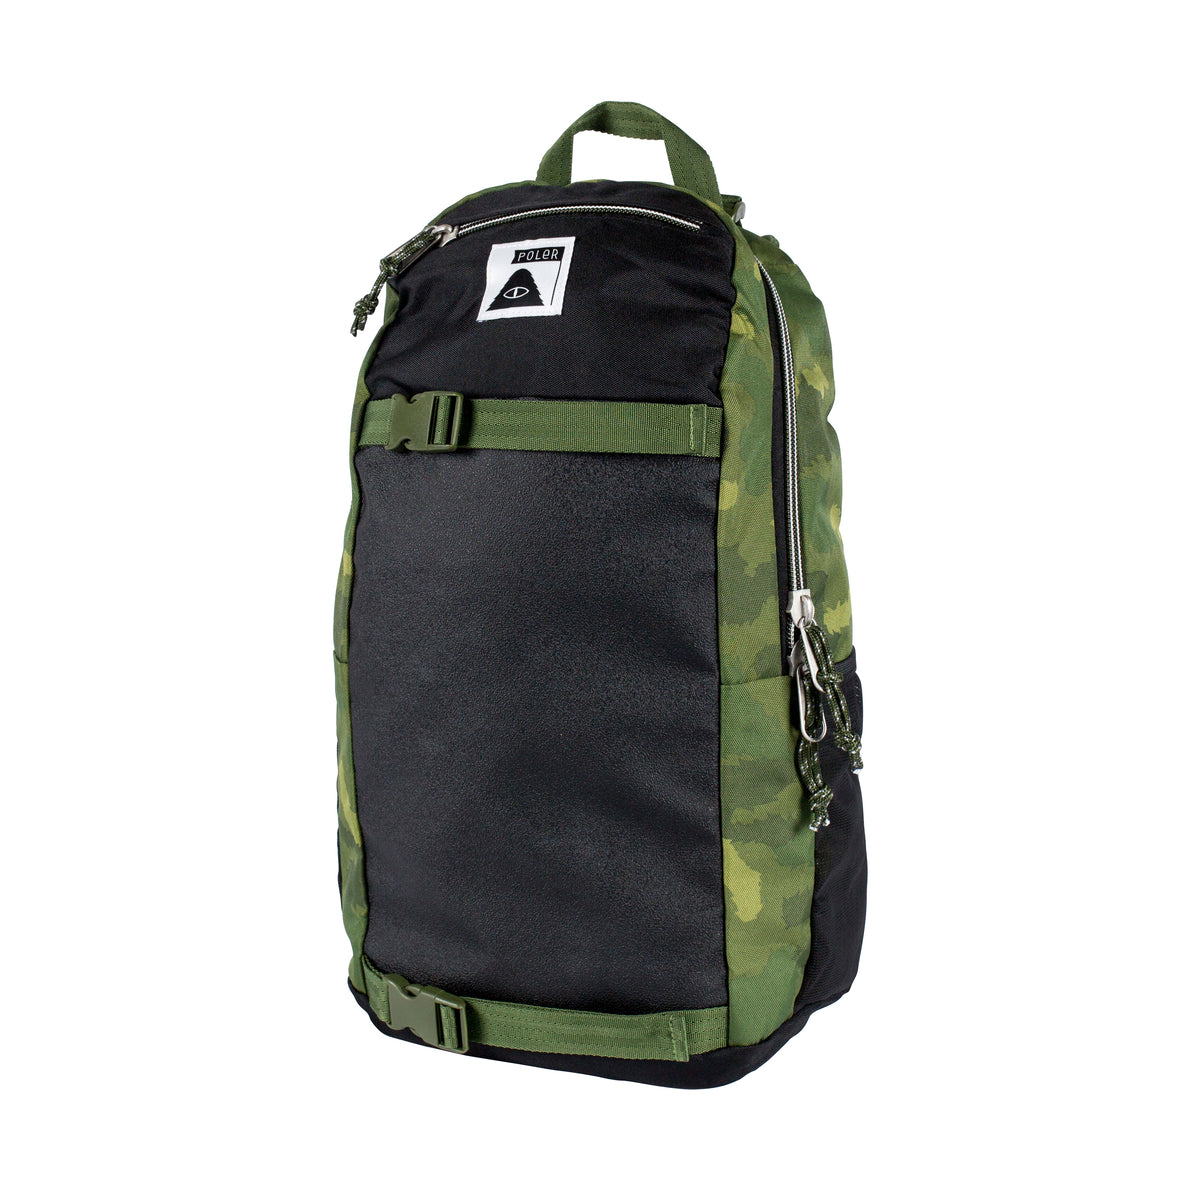 Transport Pack - Green Furry Camo